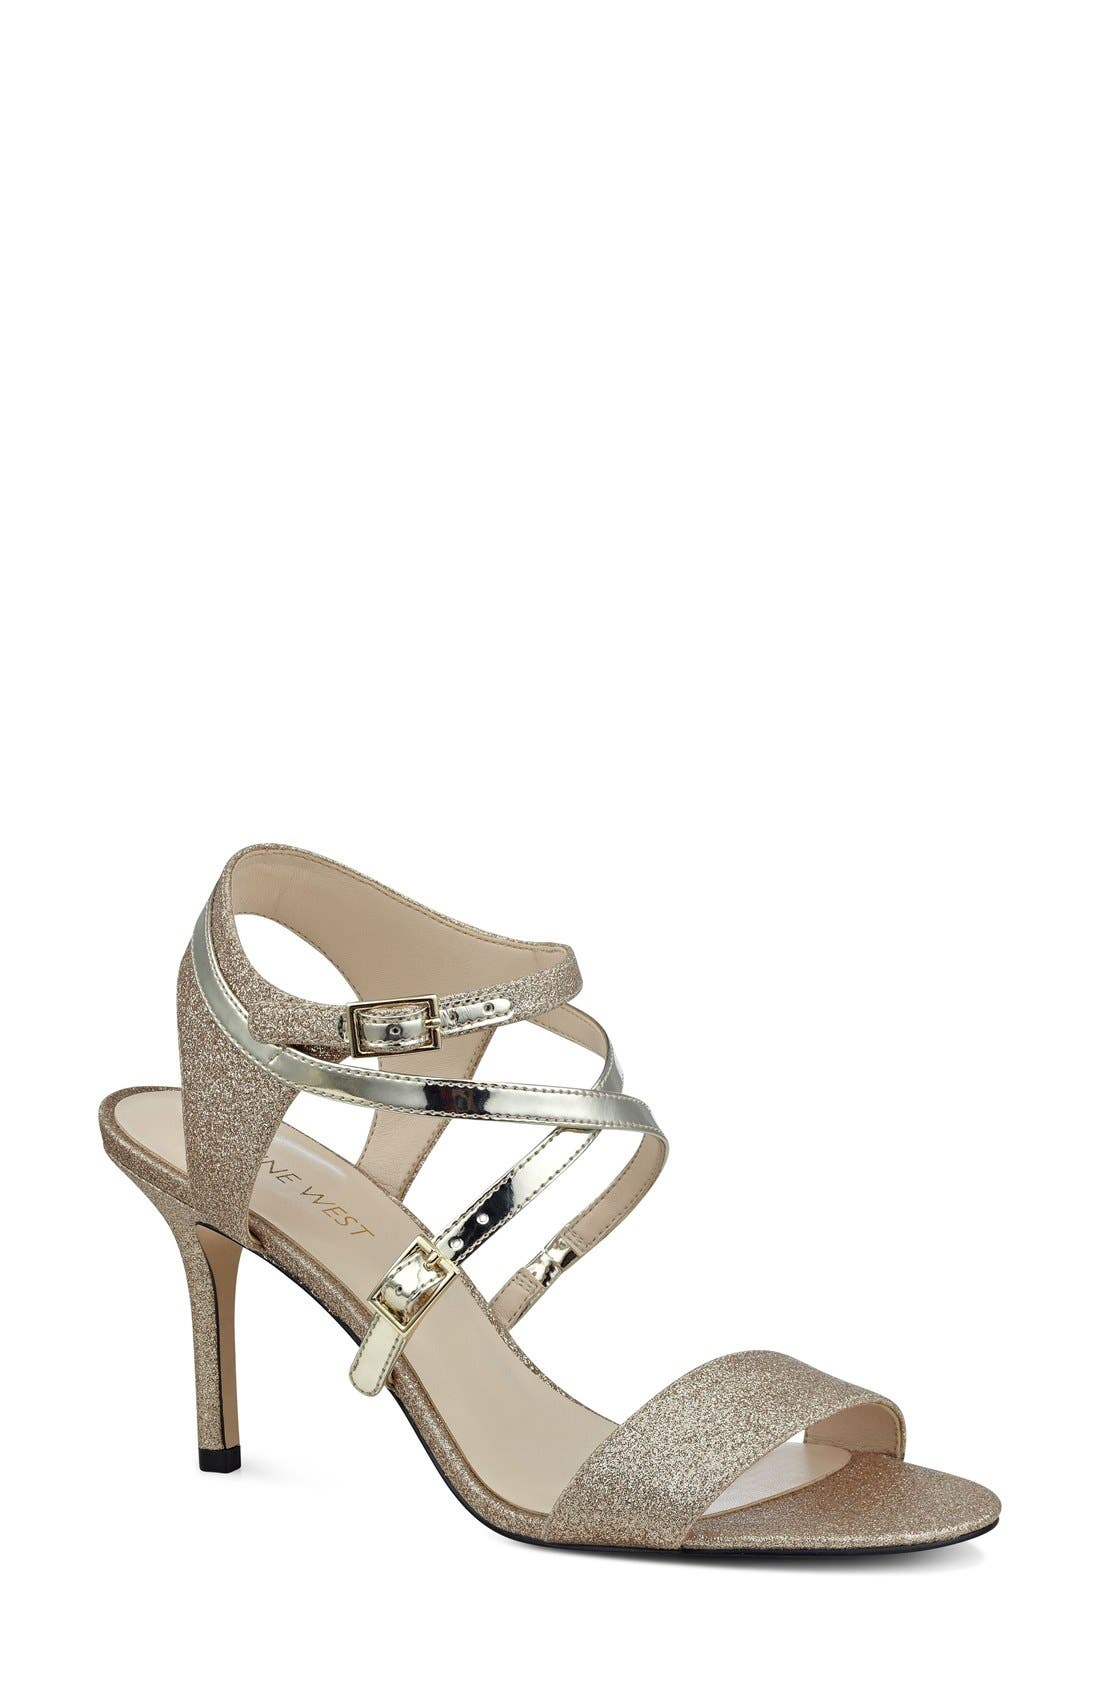 NINE WEST 'Gypsee' Strappy Sandal